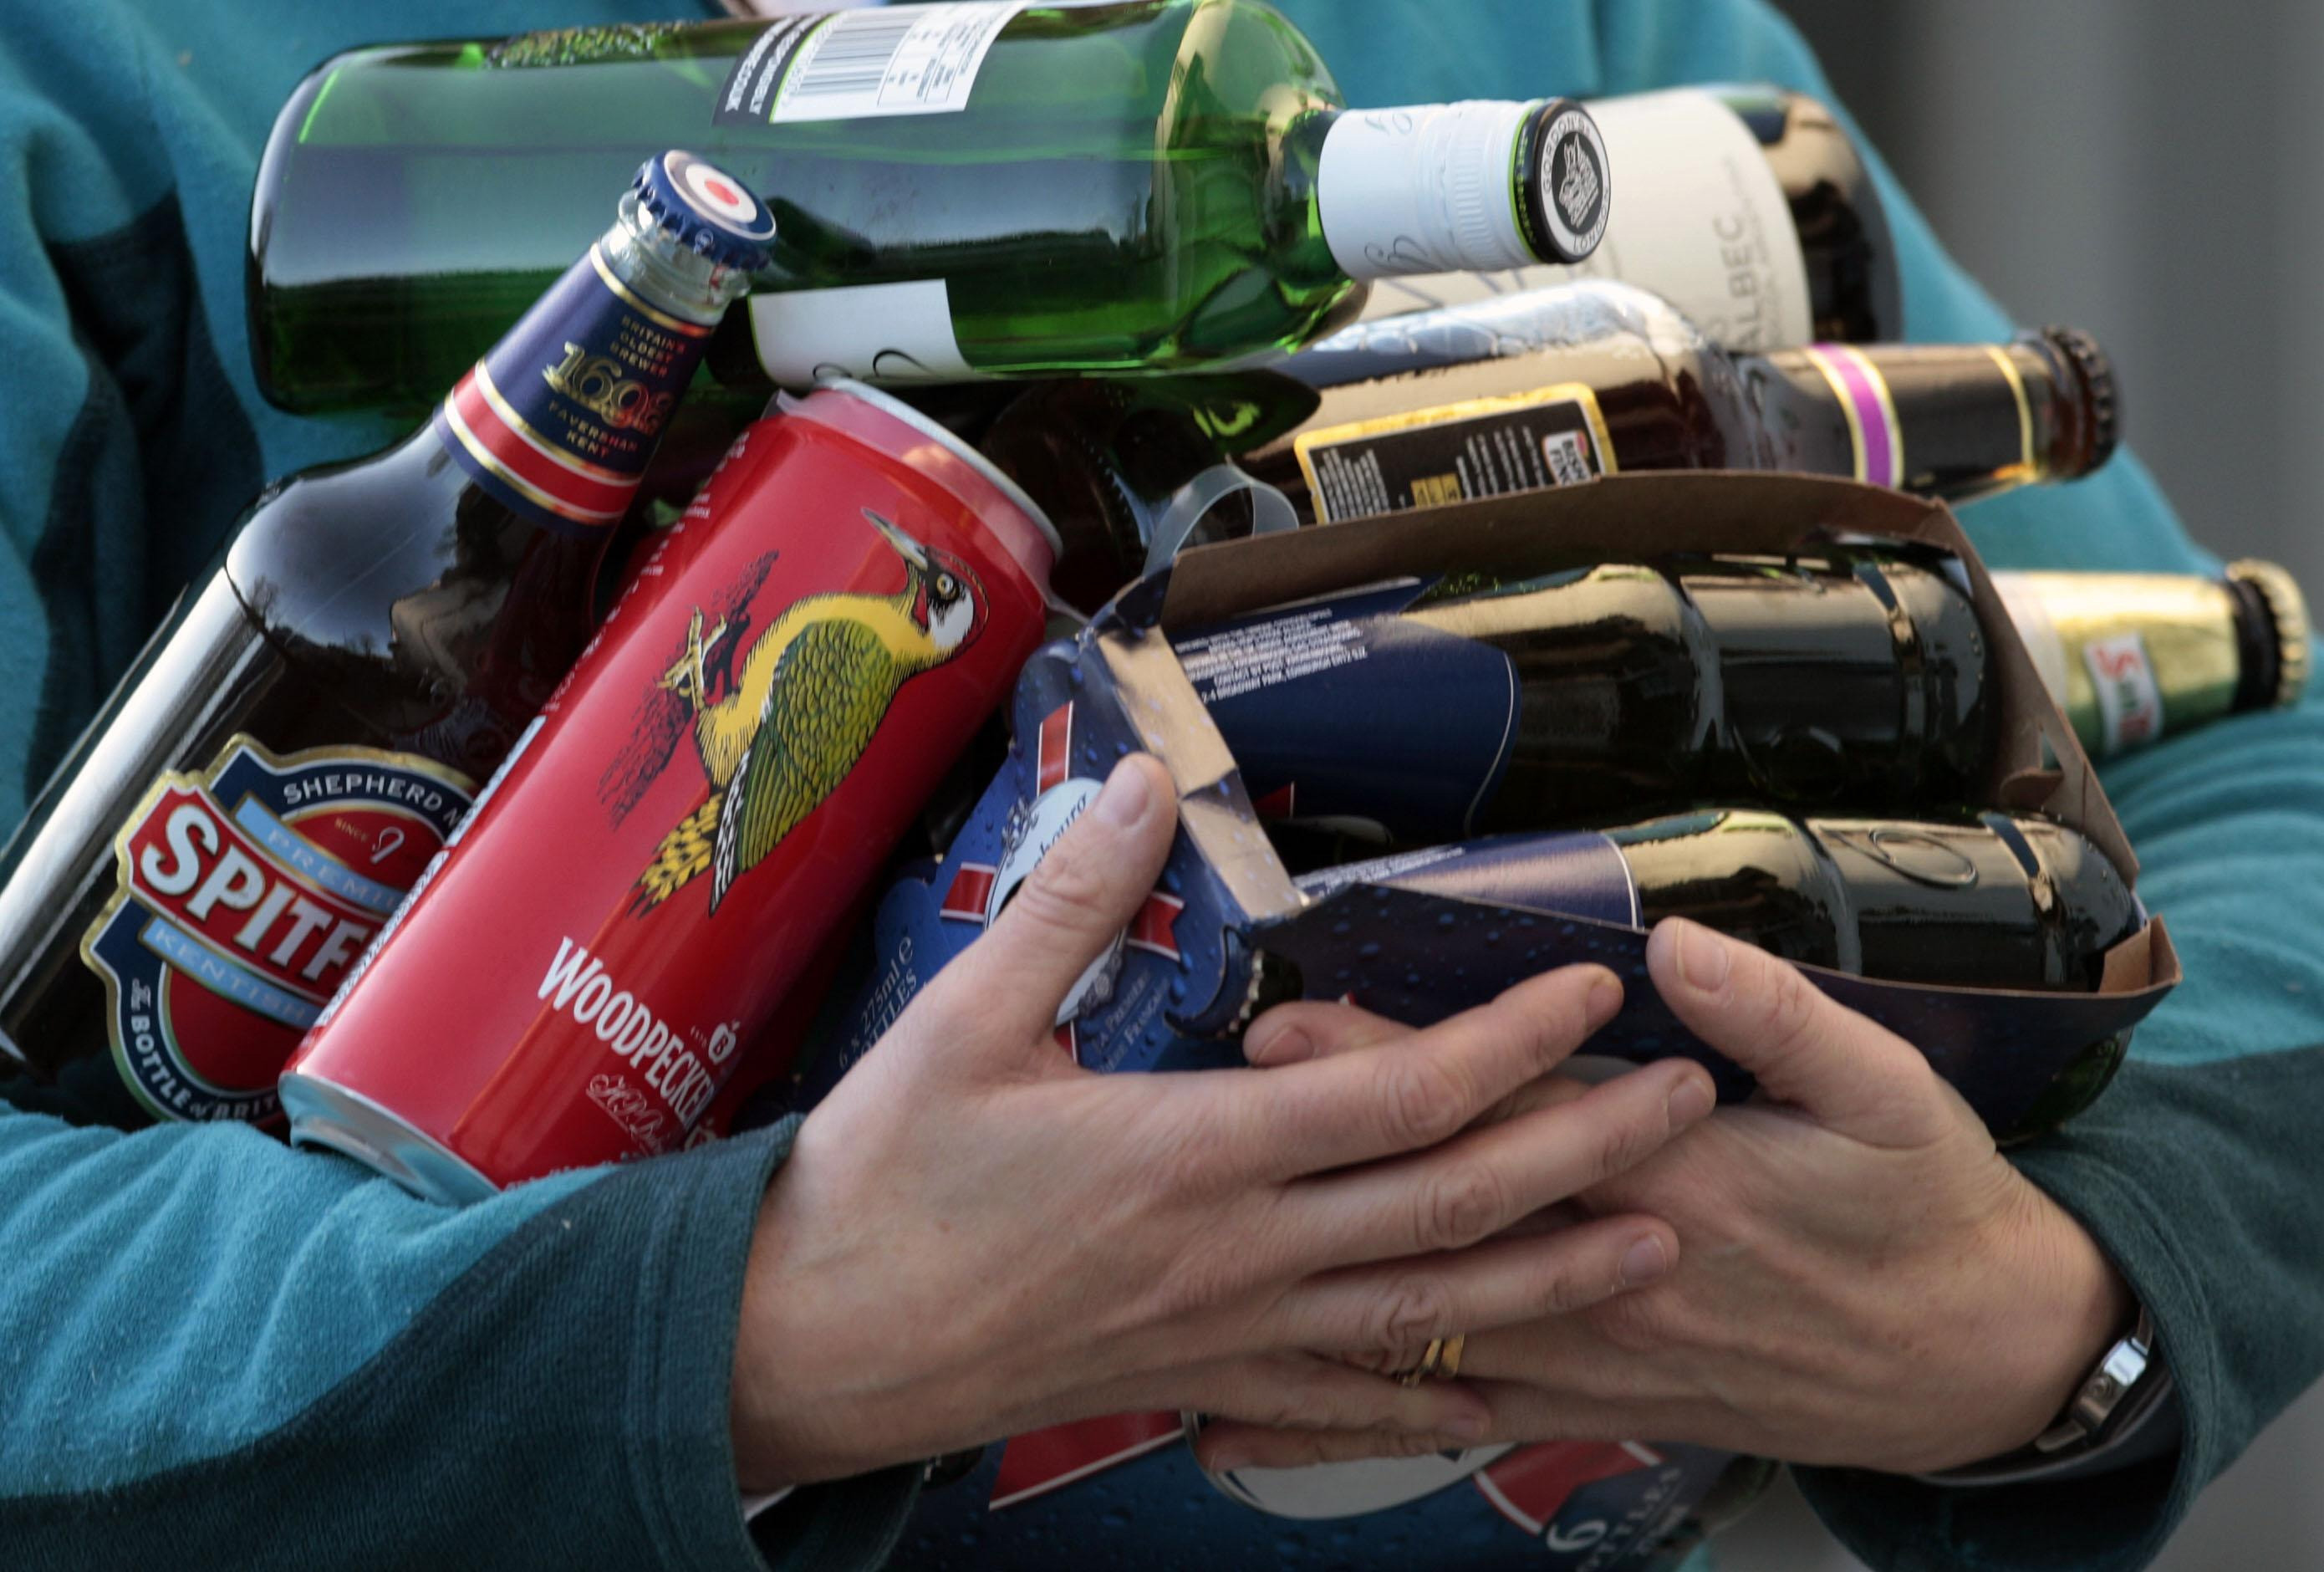 Police in Fife are cracking down on underage drinking.